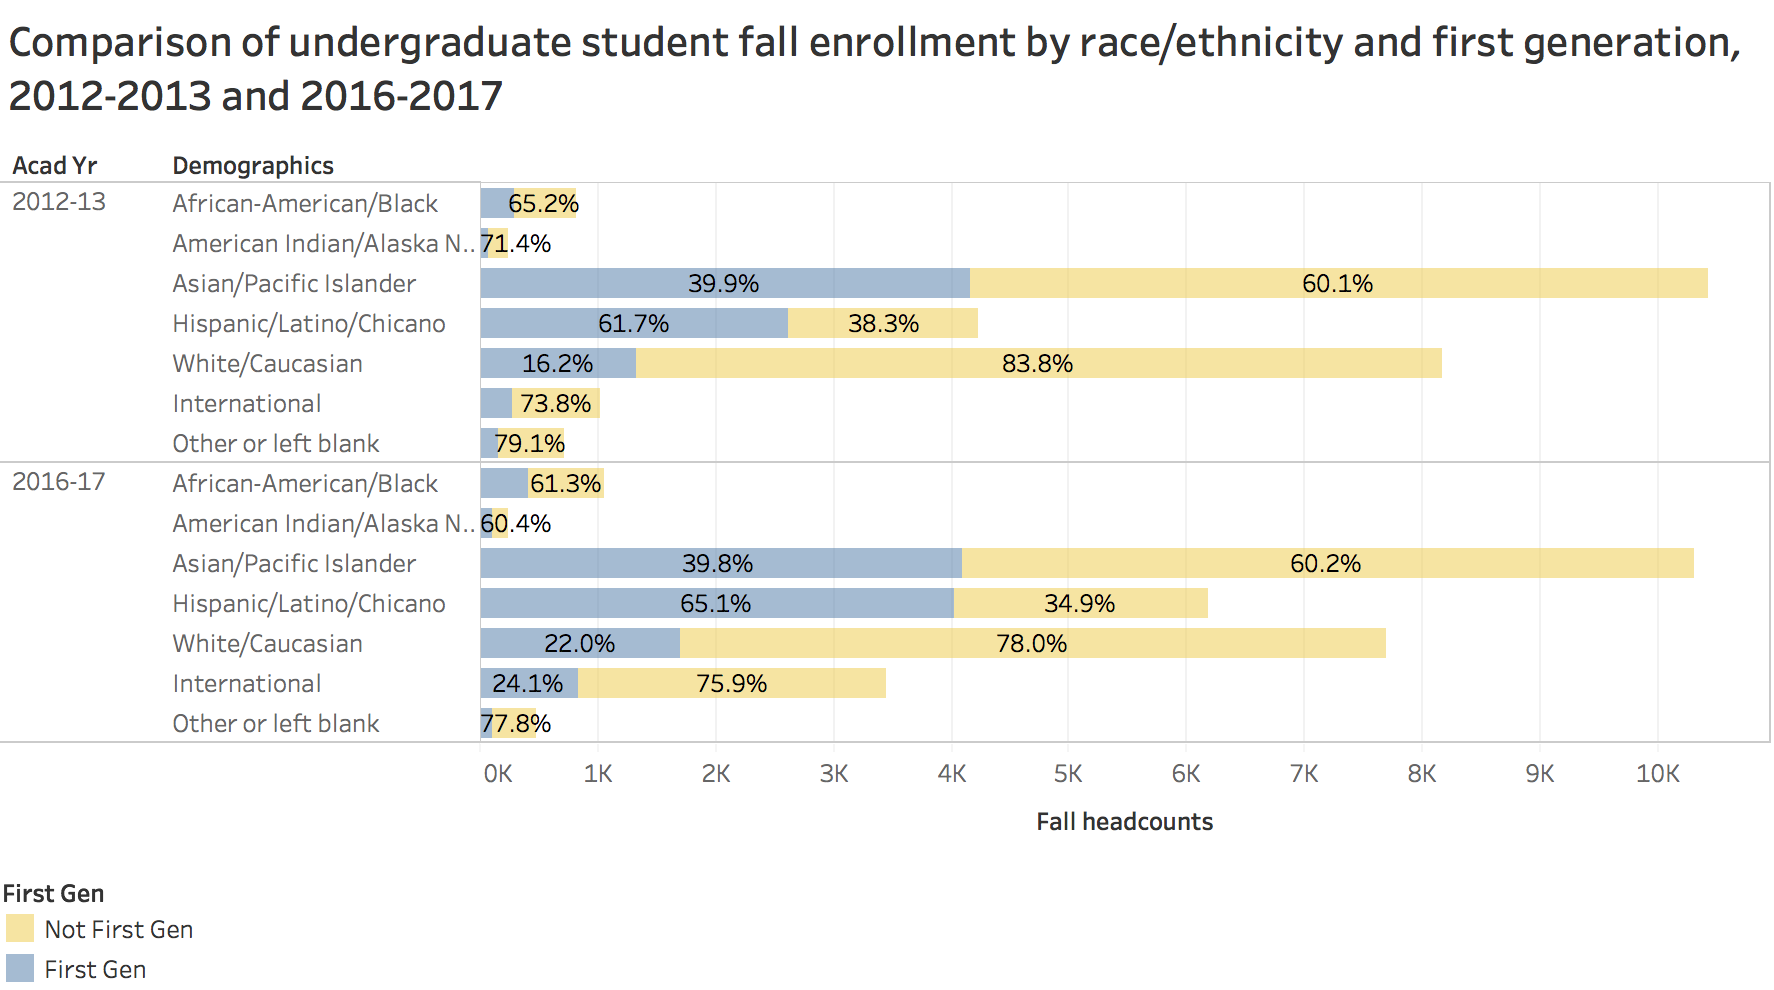 Comparison of undergraduate student fall enrollment by race/ethnicity and 1st generation